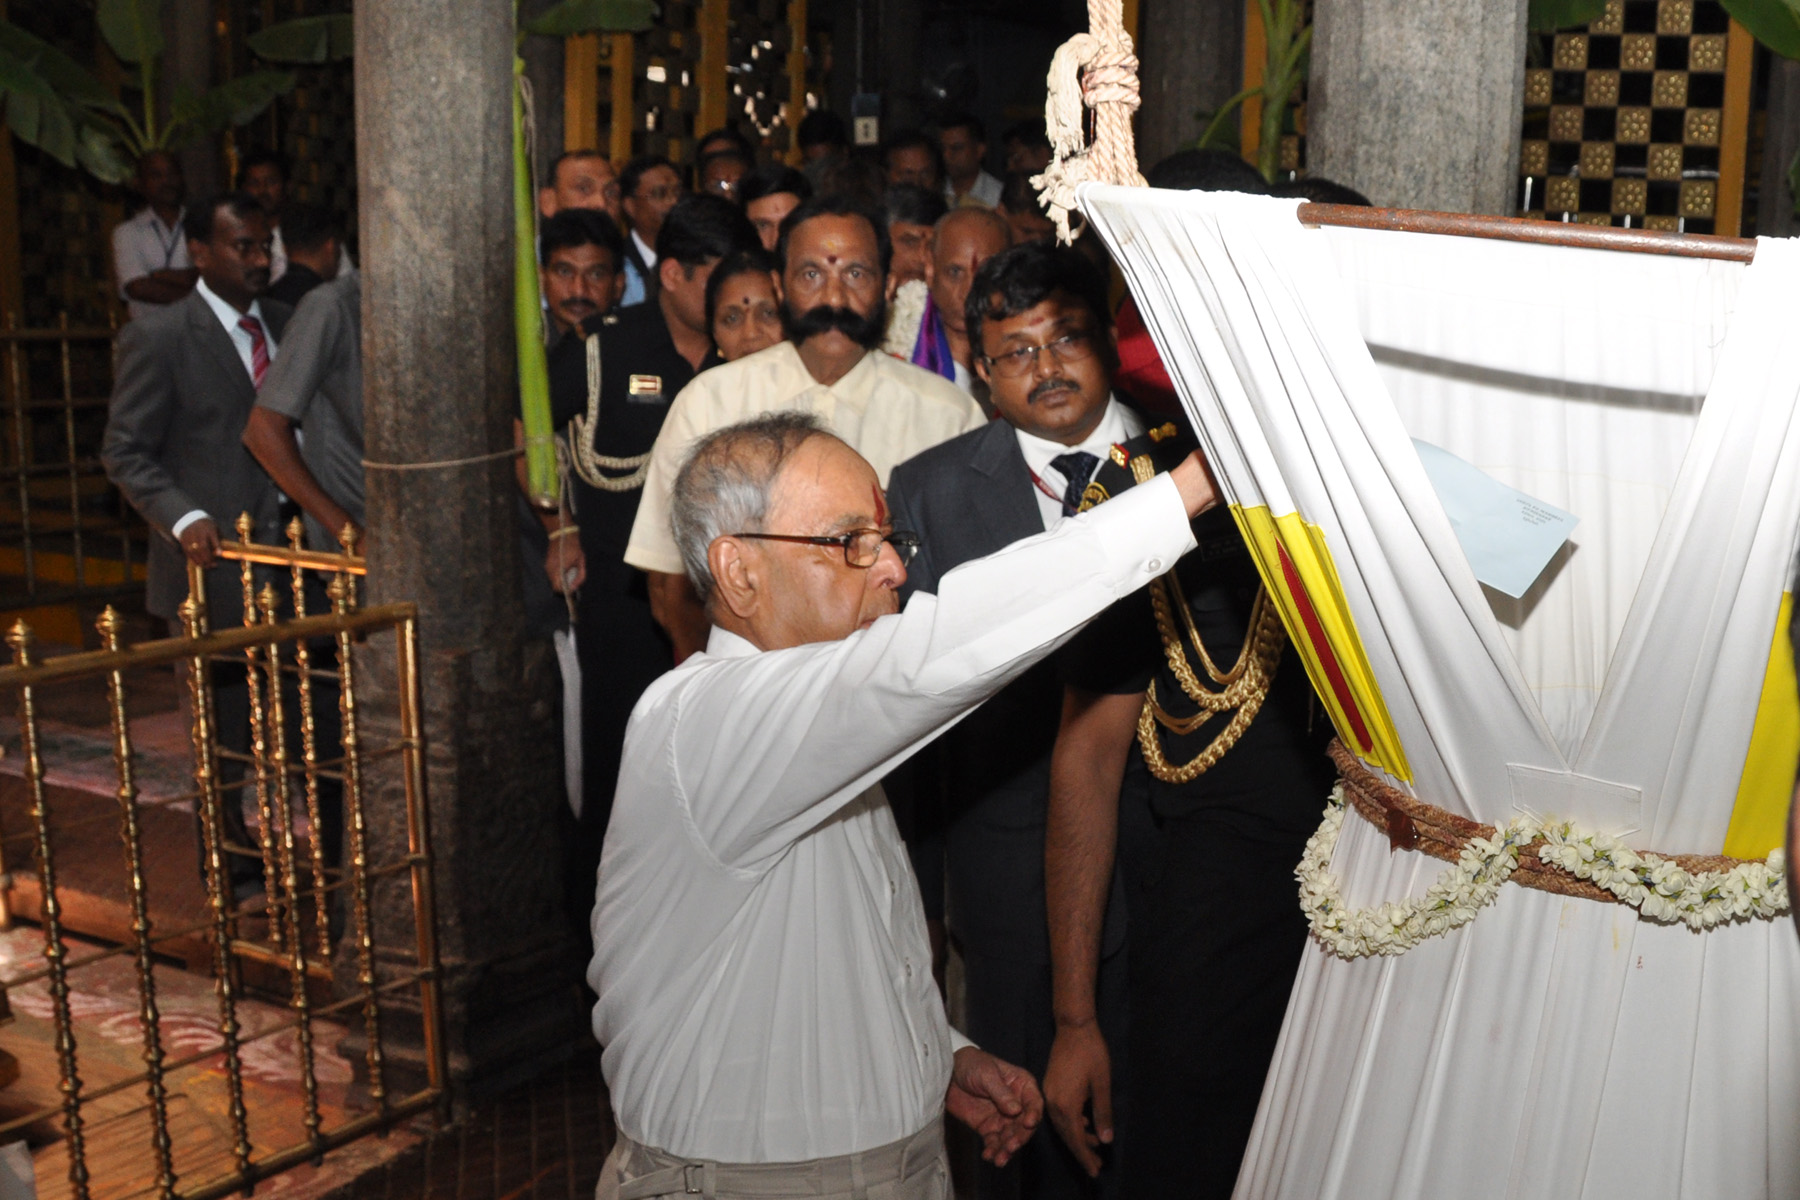 PRESIDENT OF INDIA VISITED TIRUCHANUR TEMPLE AND KAPILESWARASWAMY TEMPLE IN TIRUPATI PROG.PHOTOS ON 01-07-15.